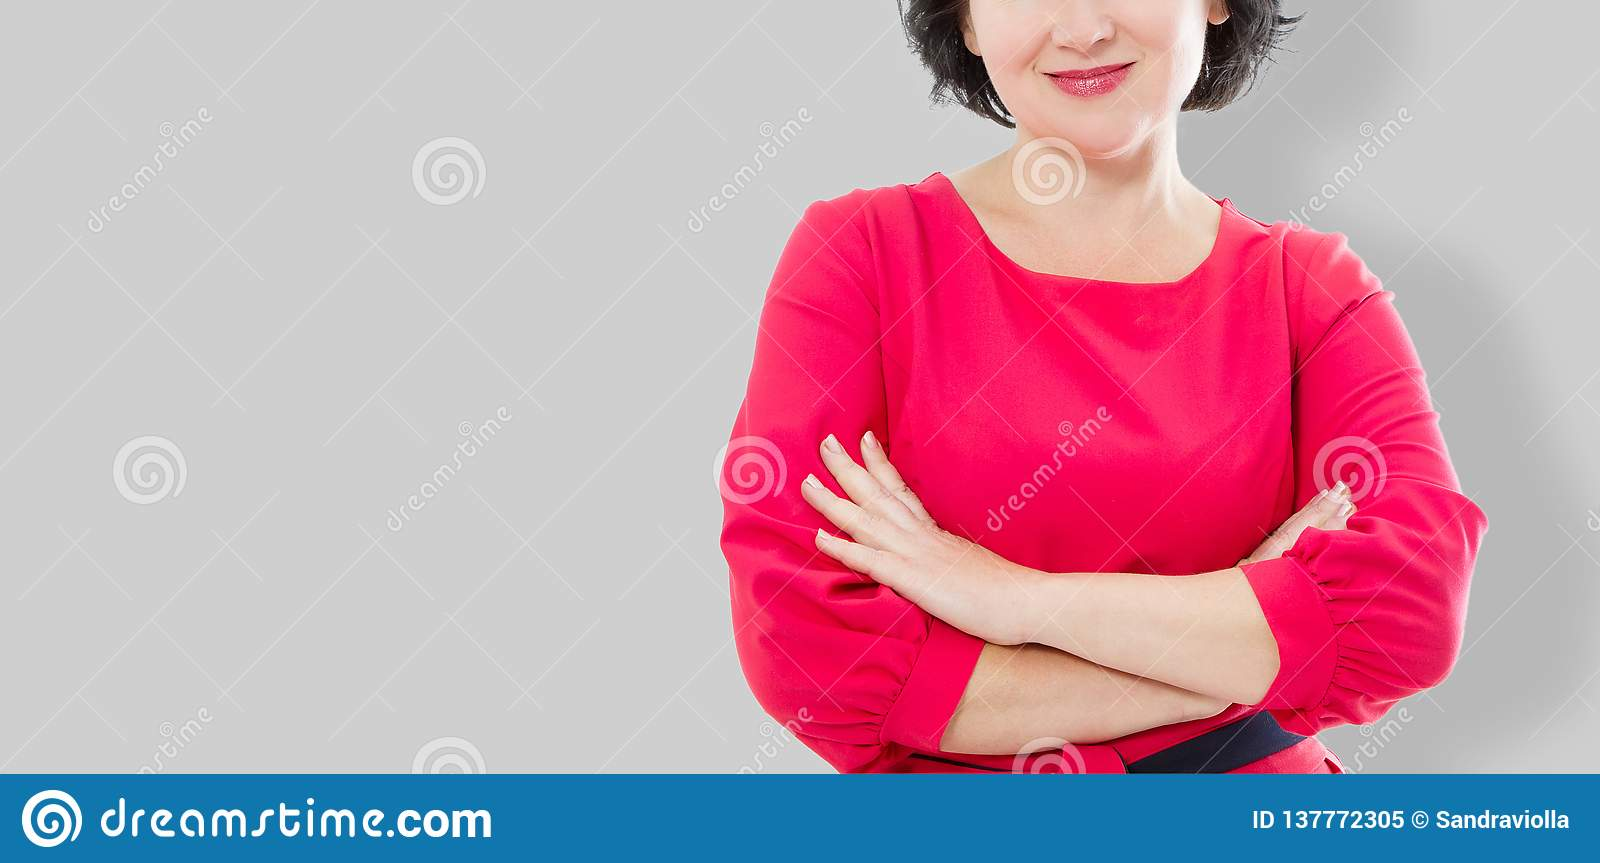 Smiling Middle age woman in red dress and crossed arms isolated on gray background. Make up and beauty concept. Copy space.